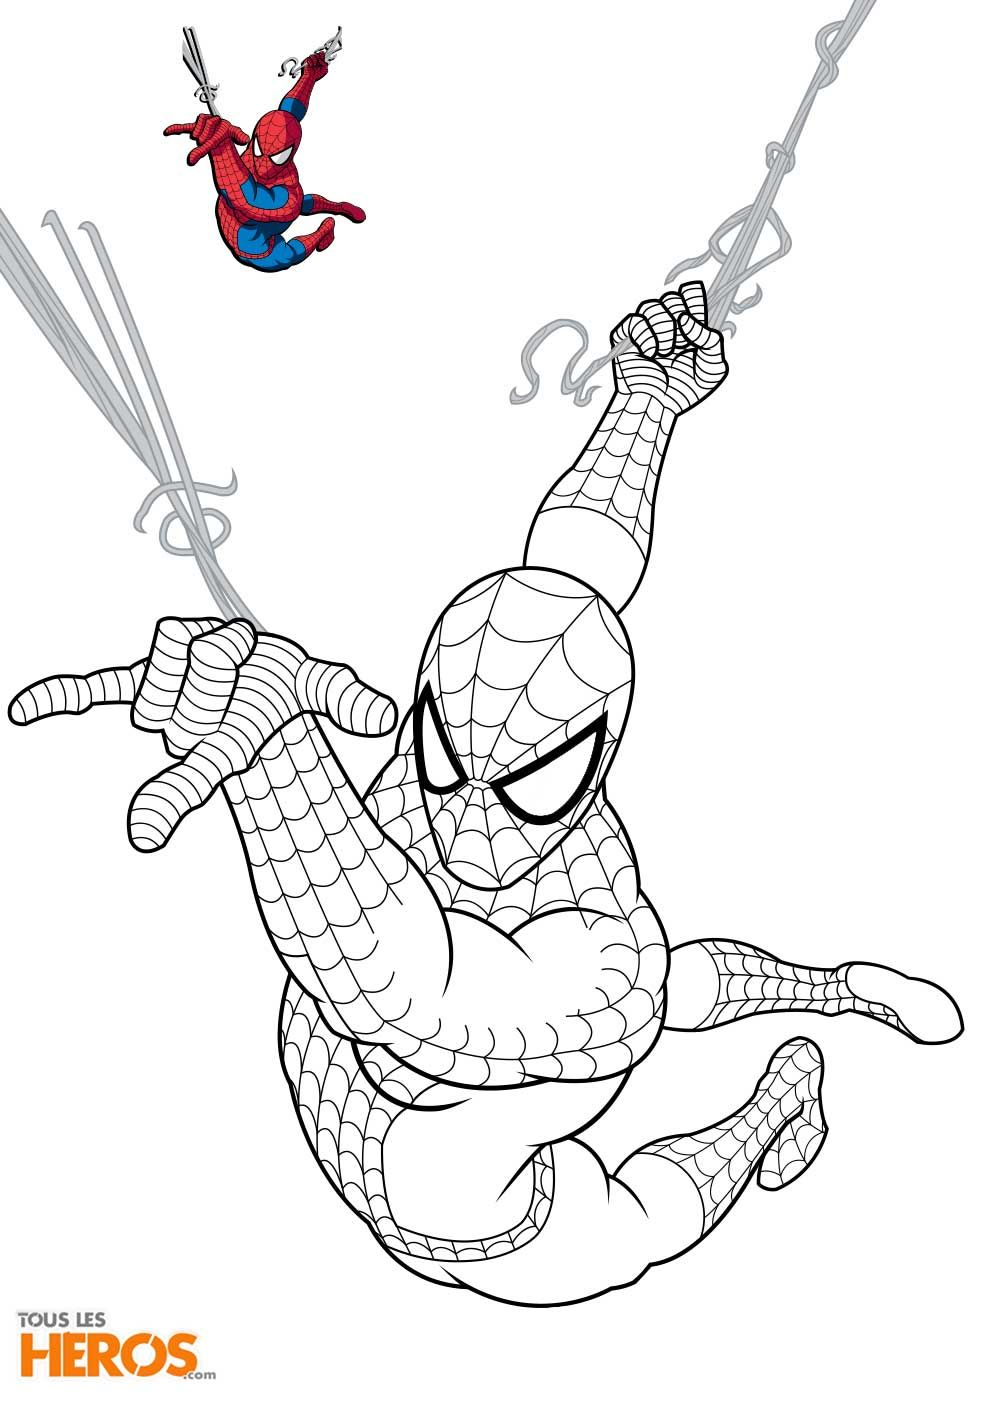 Coloriages Spiderman à Imprimer Sur Le Blog De Tlh Coloring